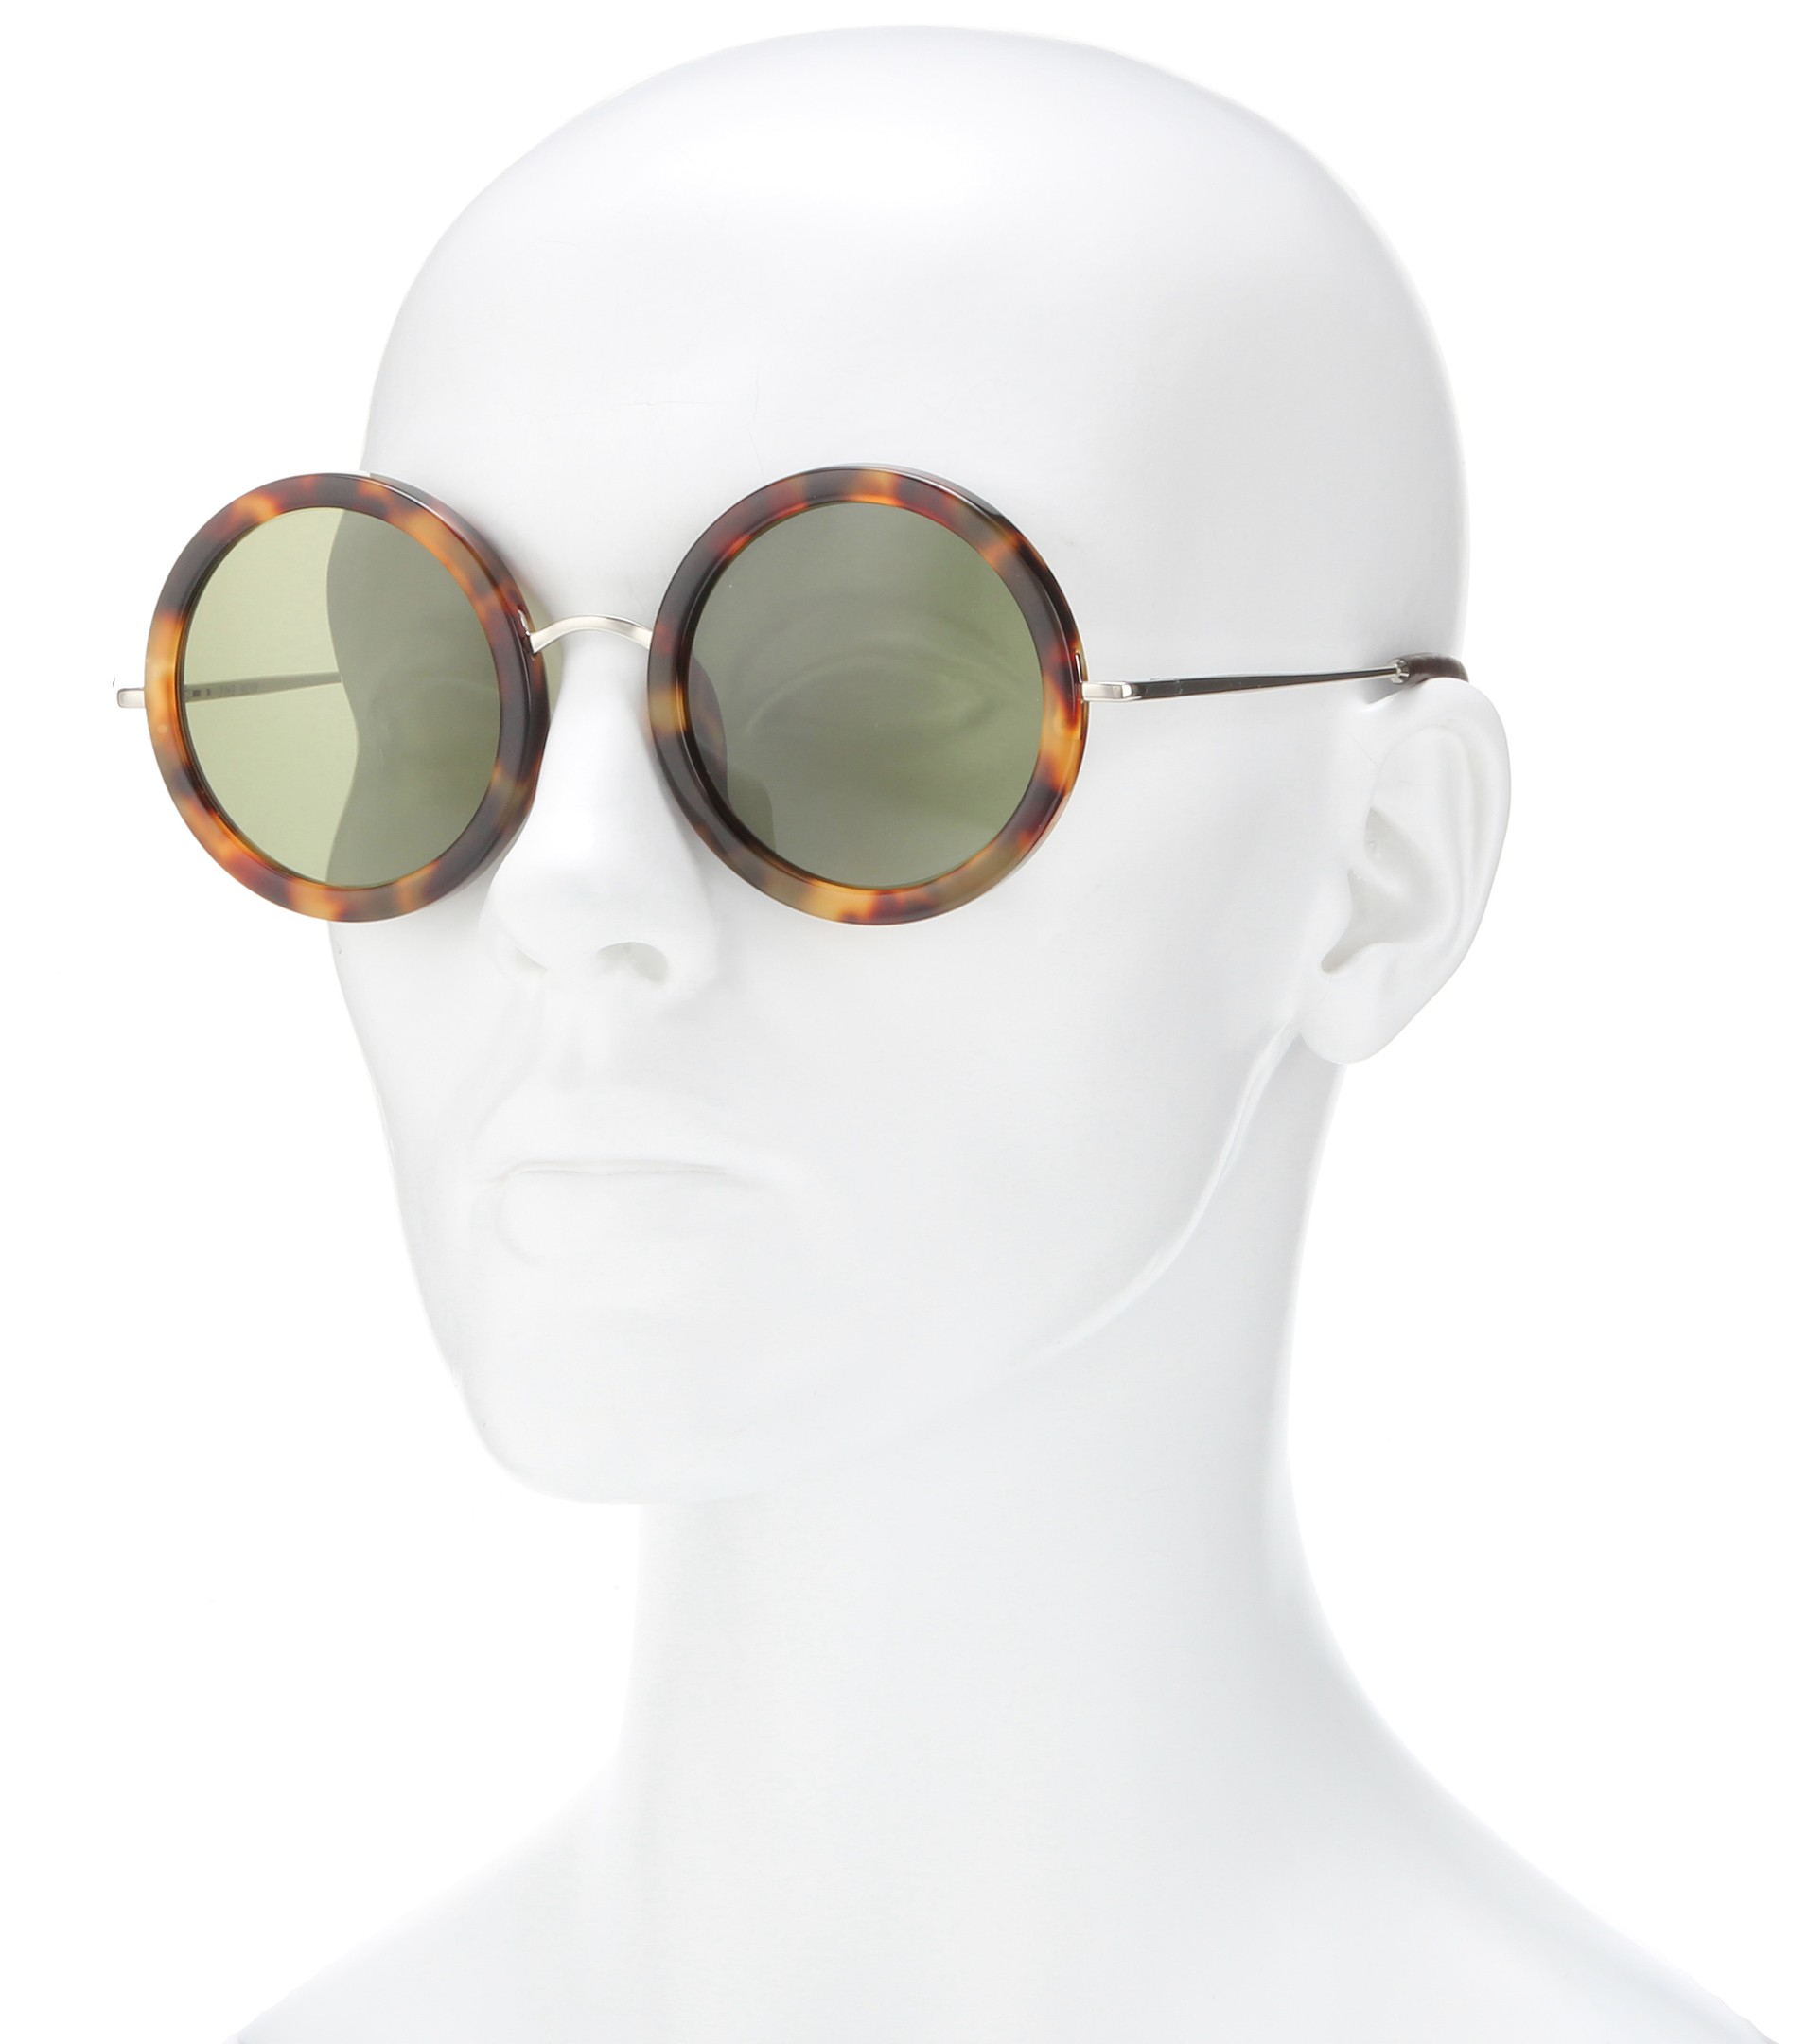 Lyst The Row 8 Sunglasses in Brown